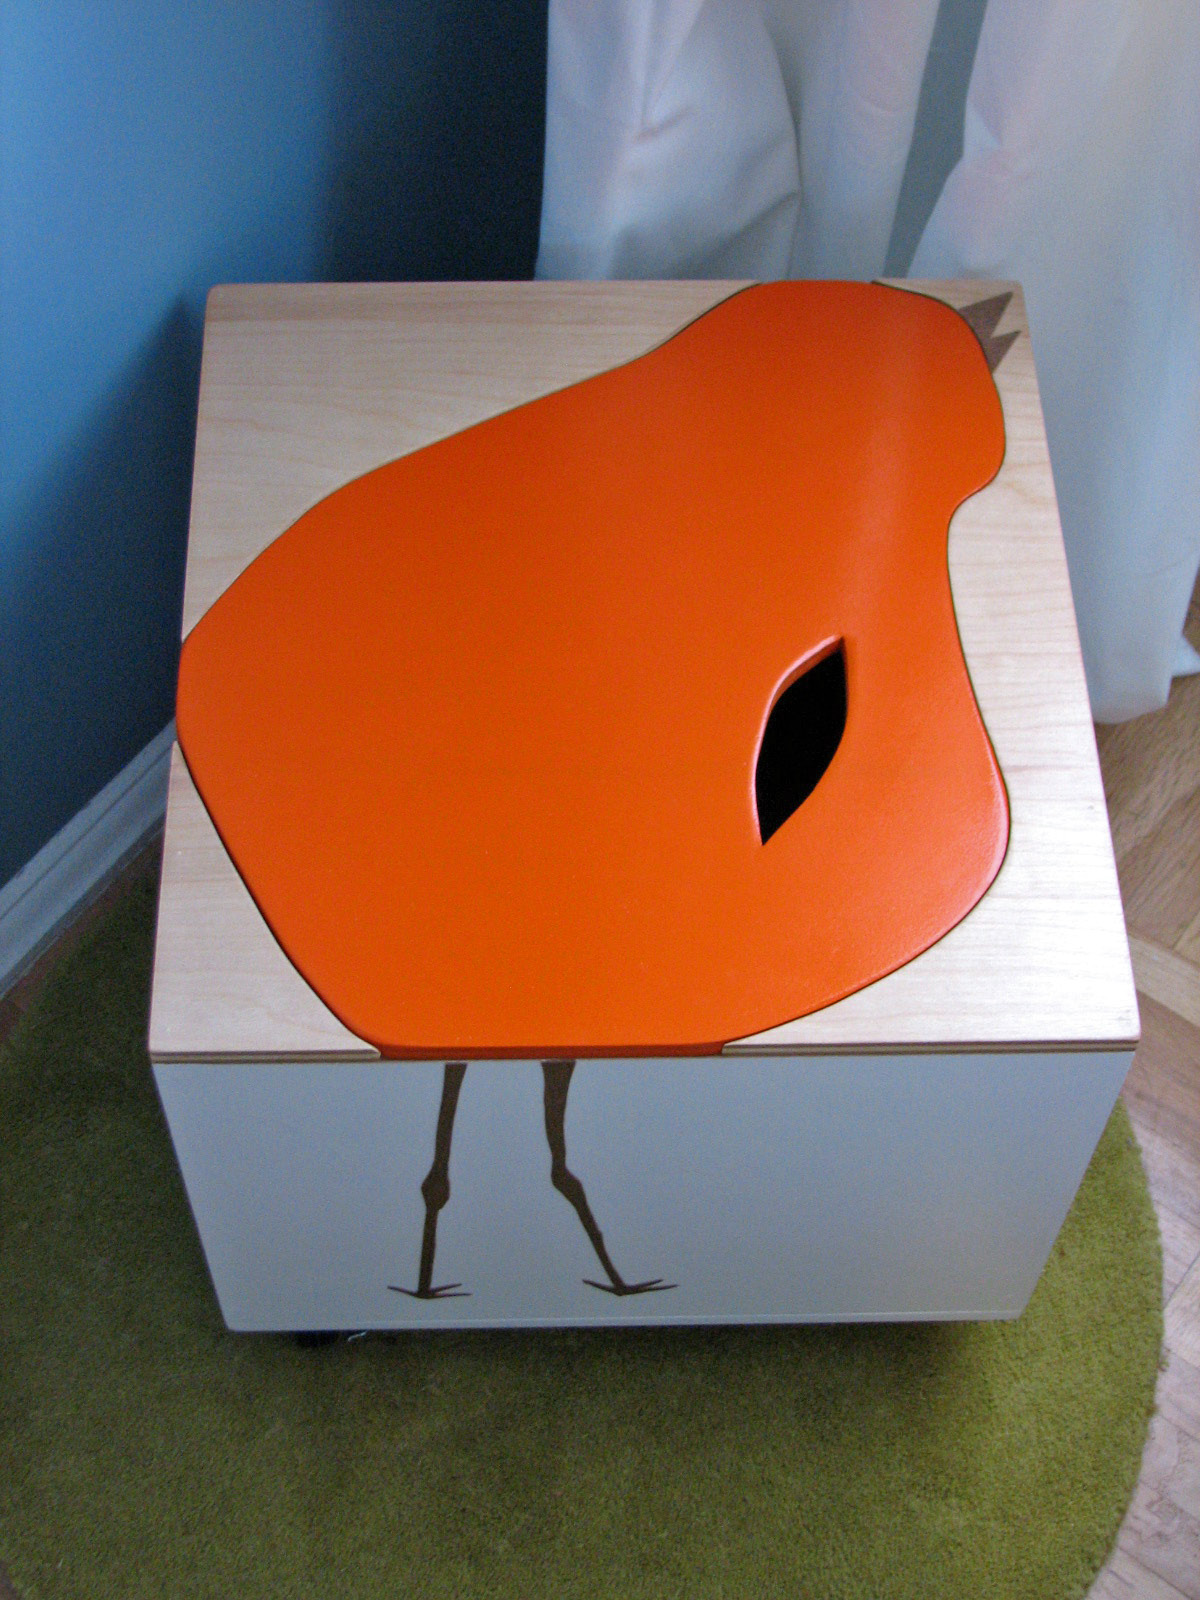 baldmanmodpad mod mom furniture - you know about the mod mom furniture already possibly as i'm finding outslowly gitting your hands on cool kid furniture requires hardcore